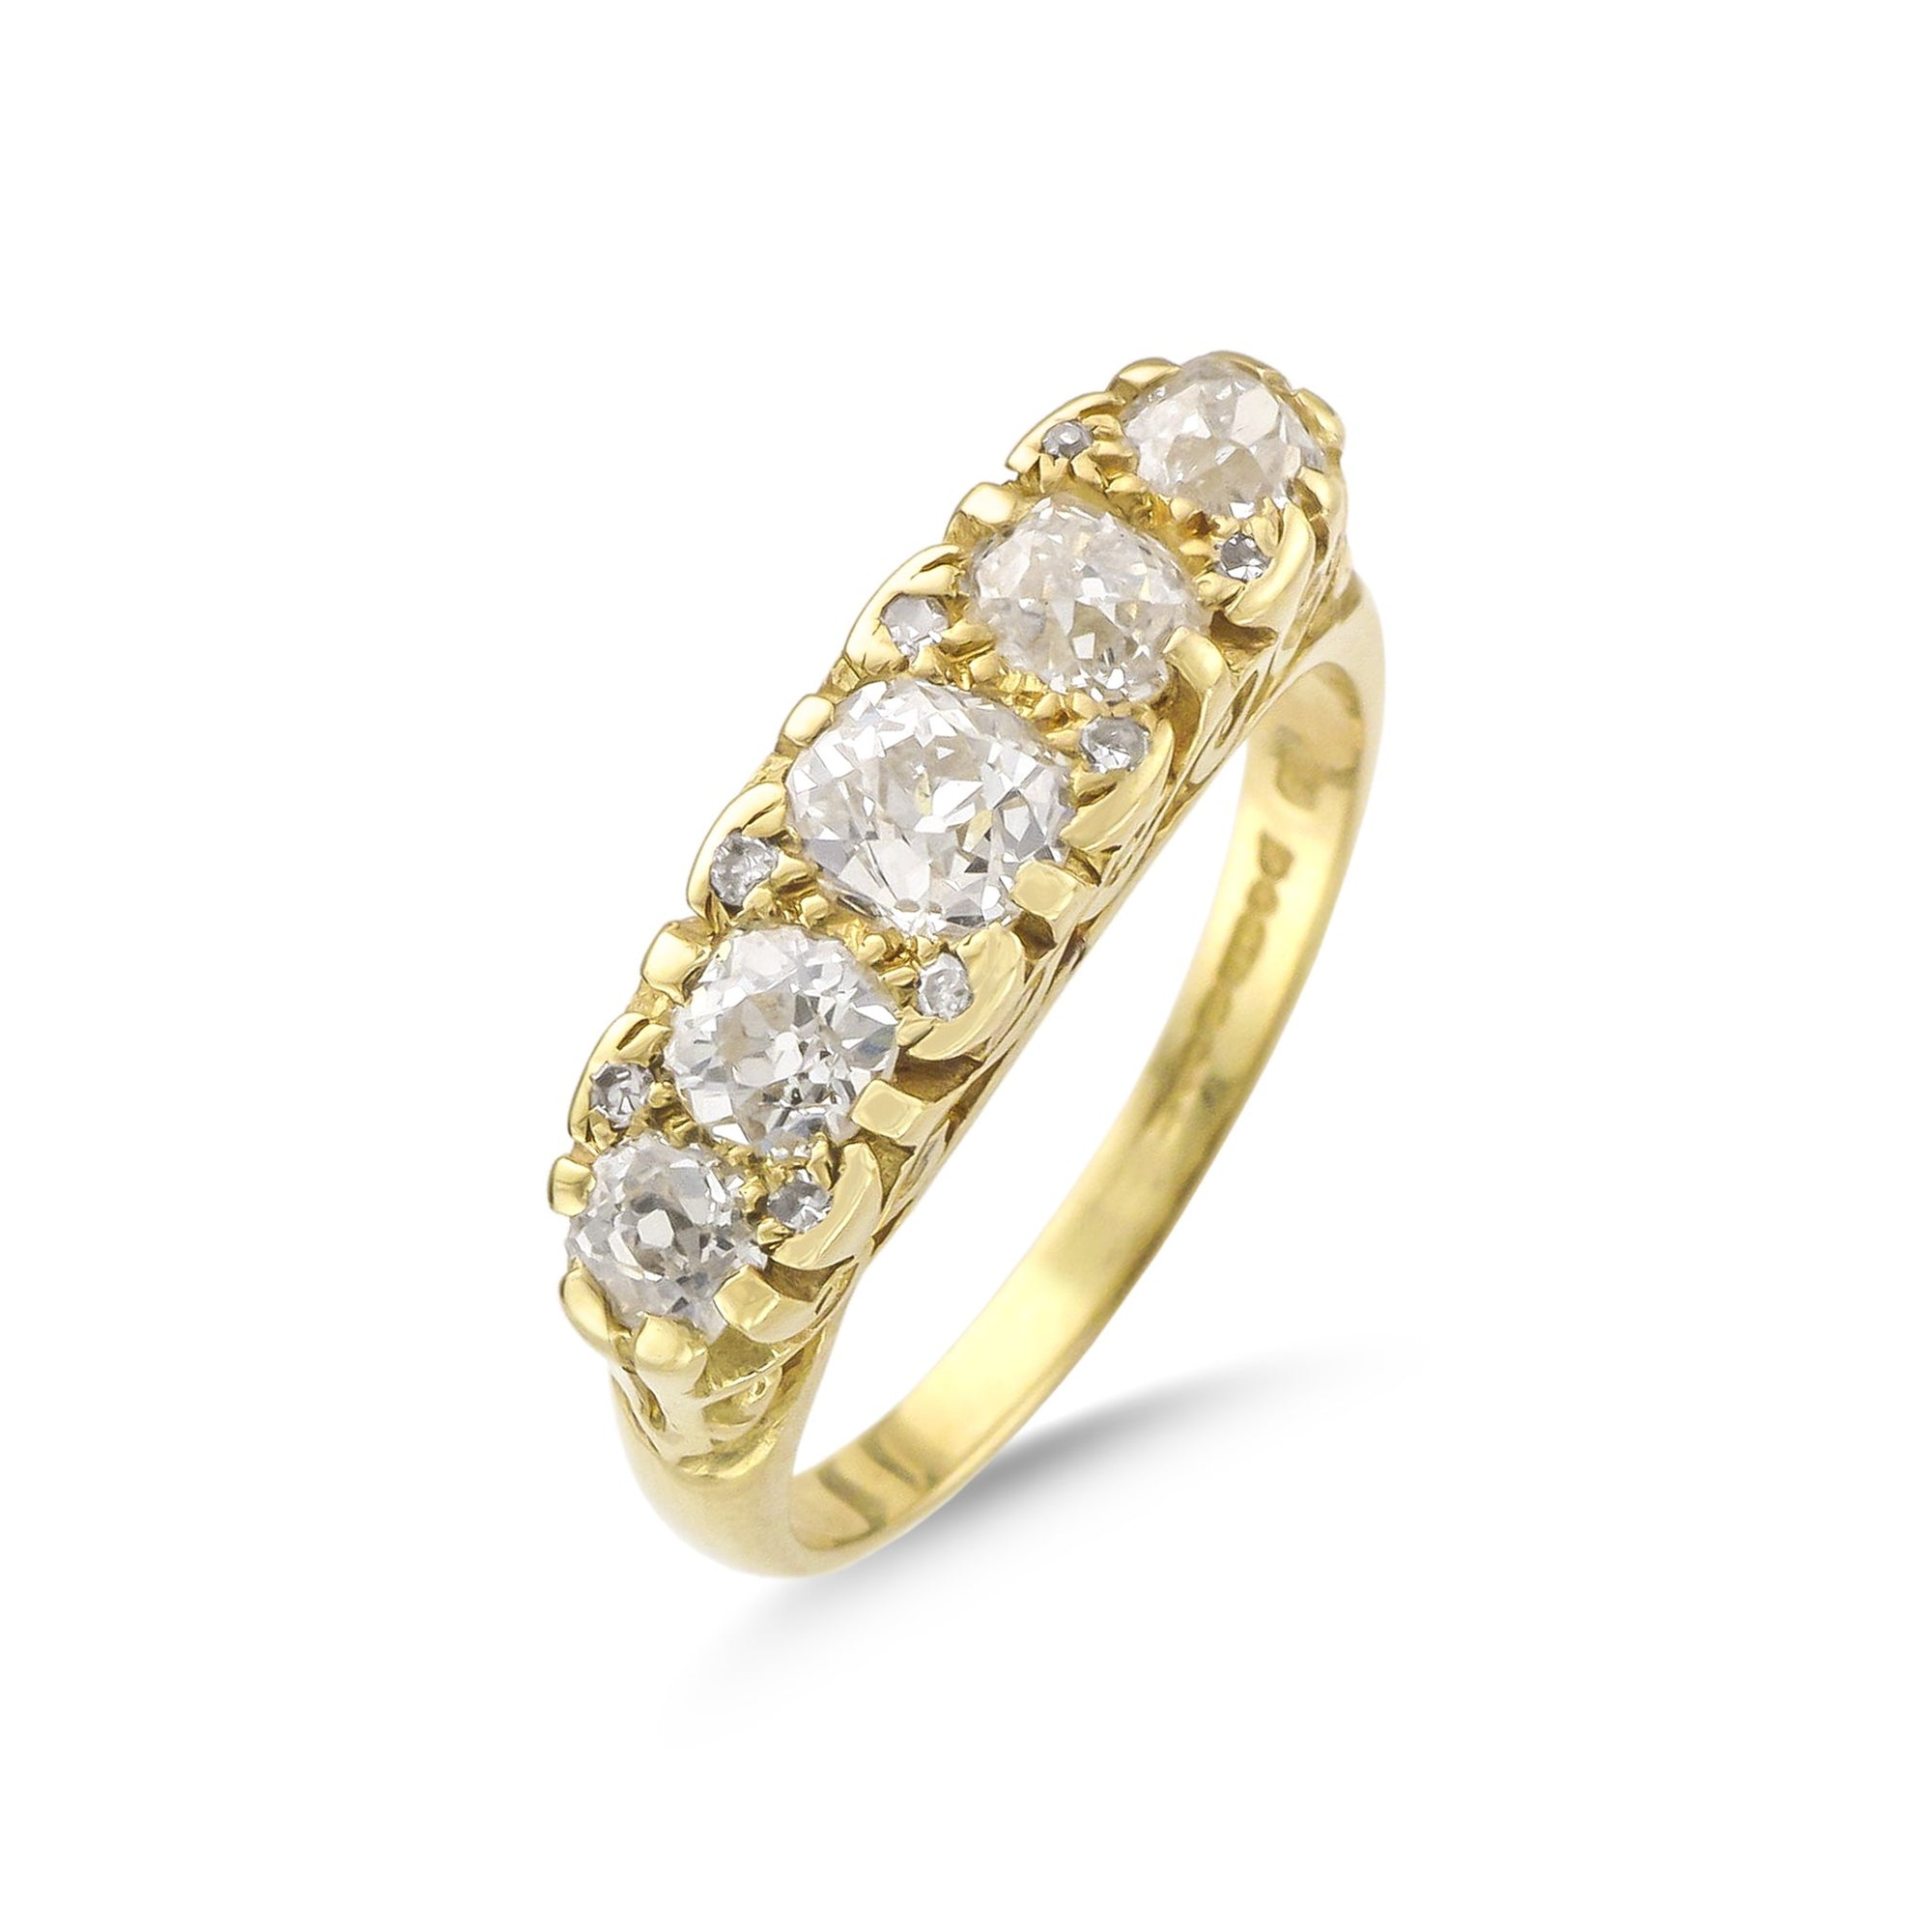 Vintage 18ct Yellow Gold Five Stone Diamond Ring